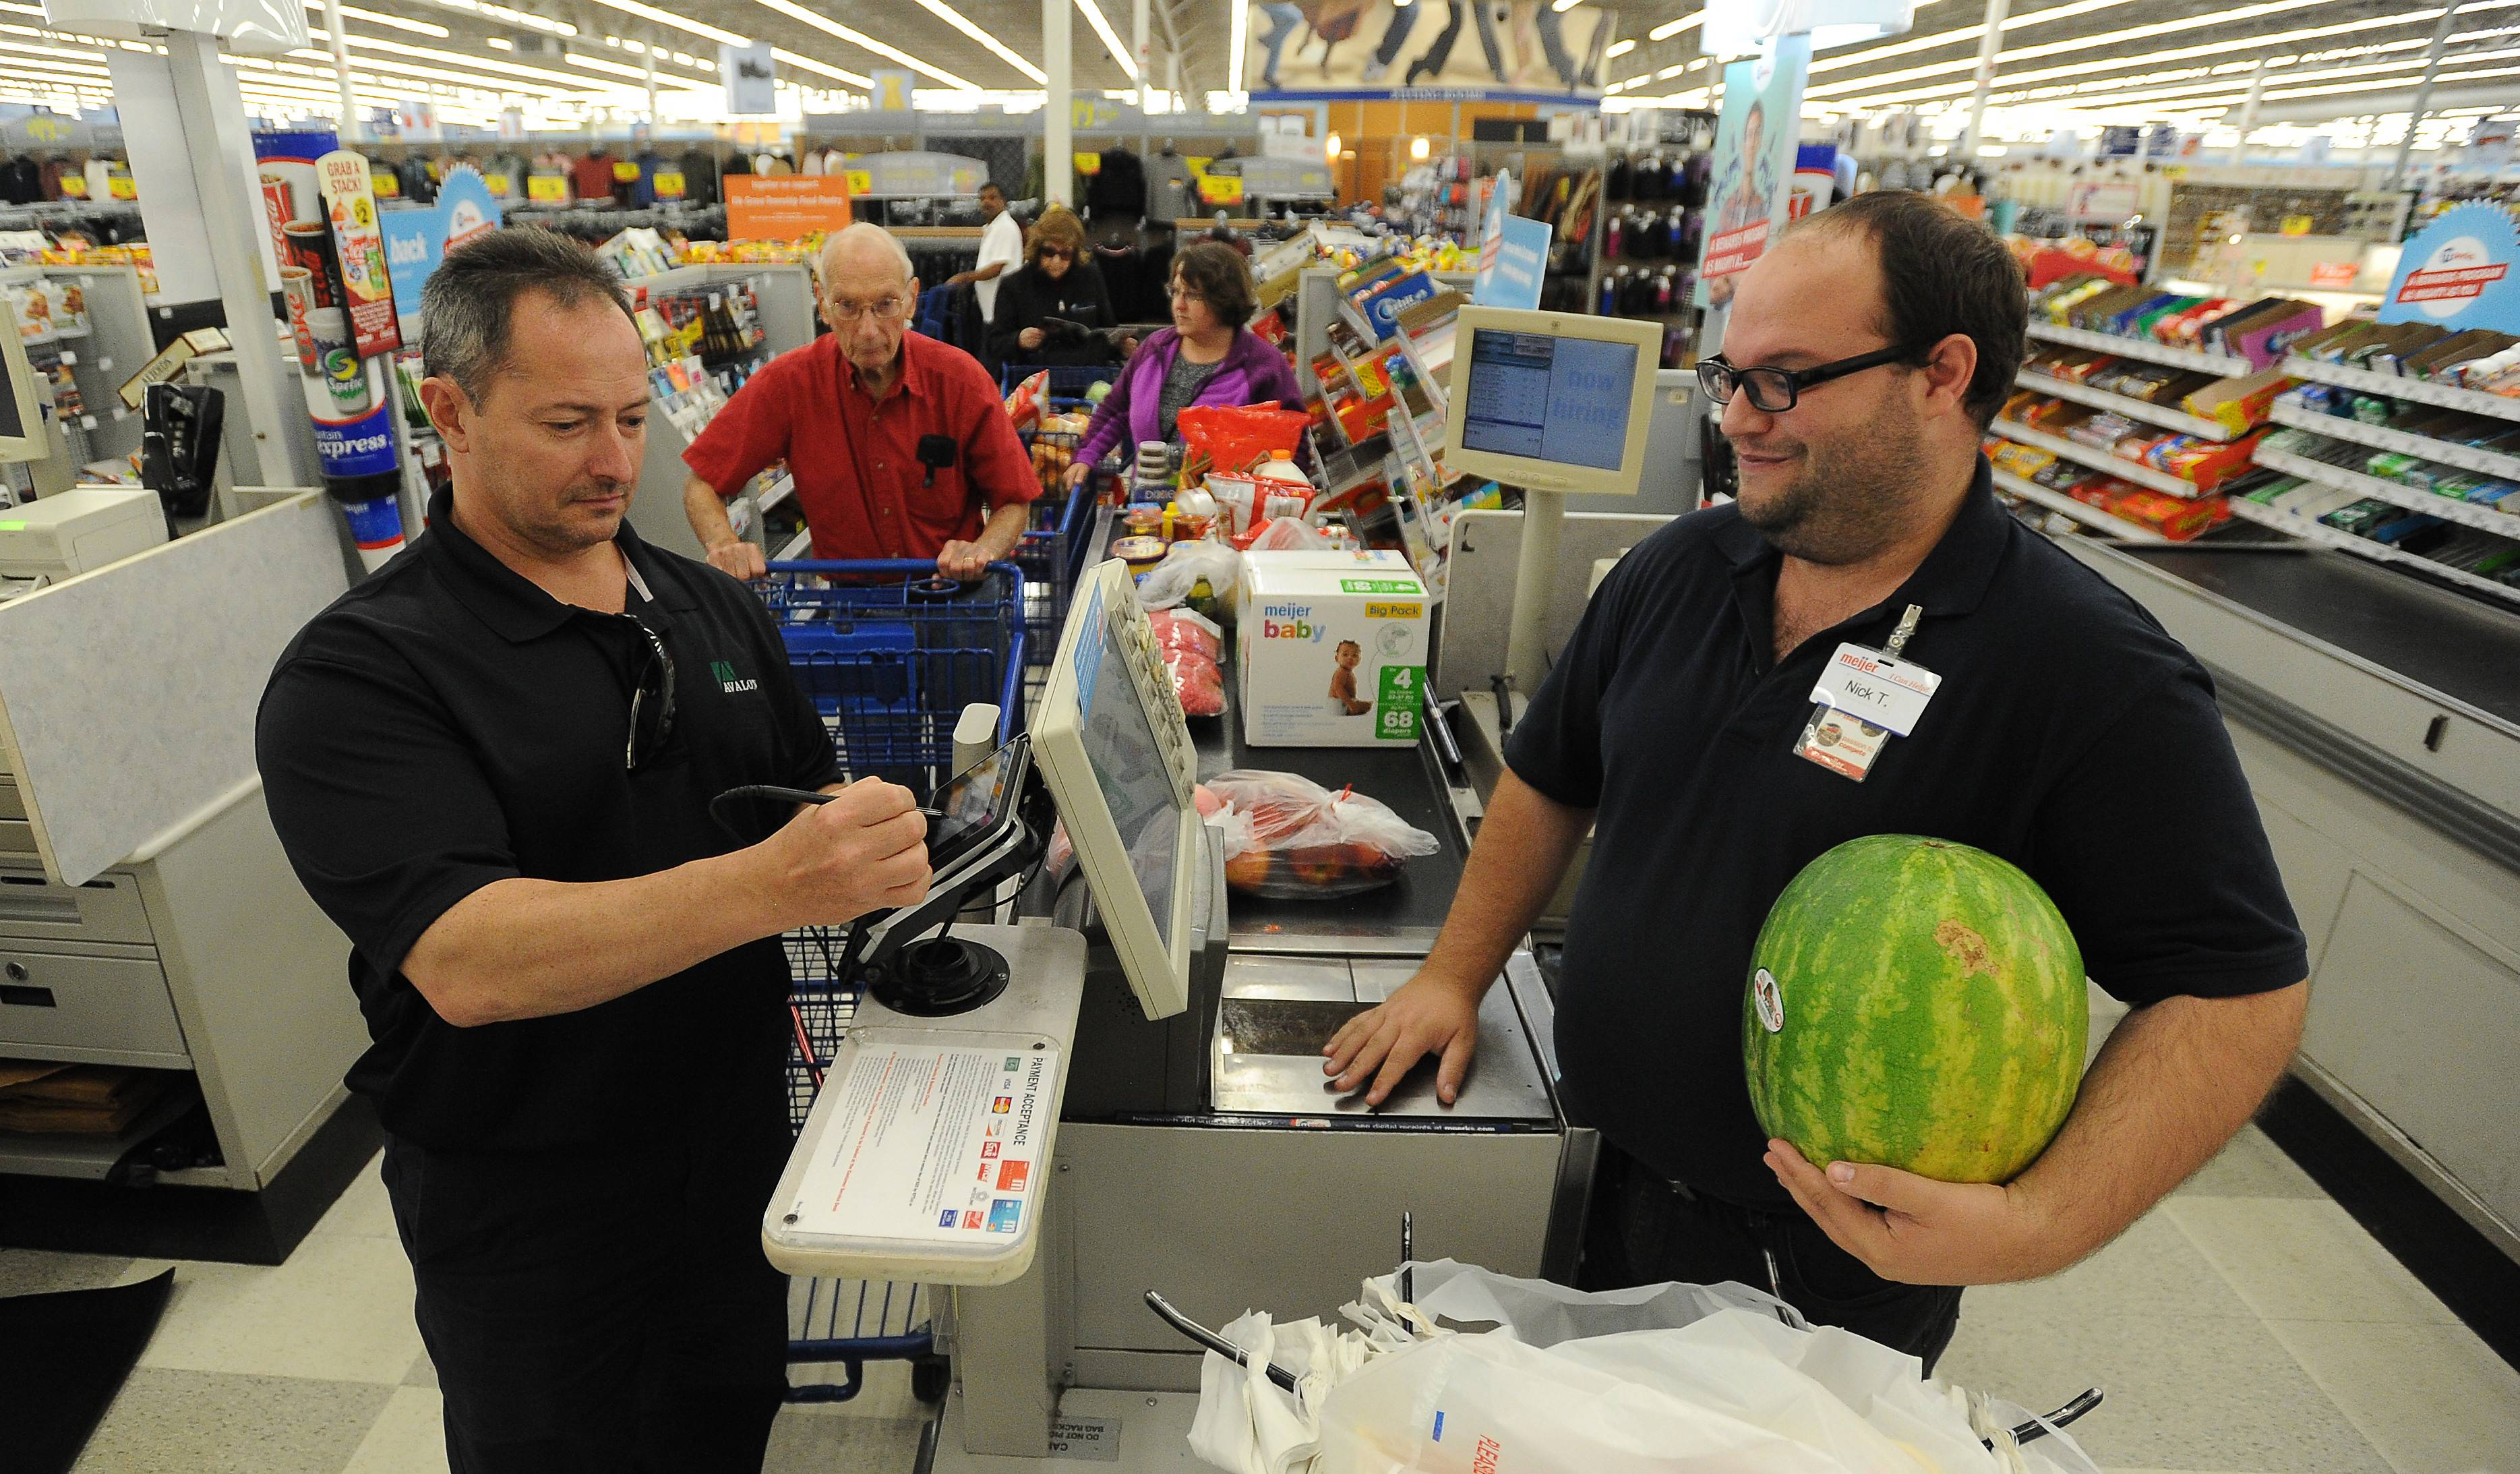 Phil Palmisano of Mount Prospect pays cashier Nick Tihonow of Rolling Meadows for groceries at Meijer in Rolling Meadows. The state will begin taking a cut of local sales taxes beginning this week.